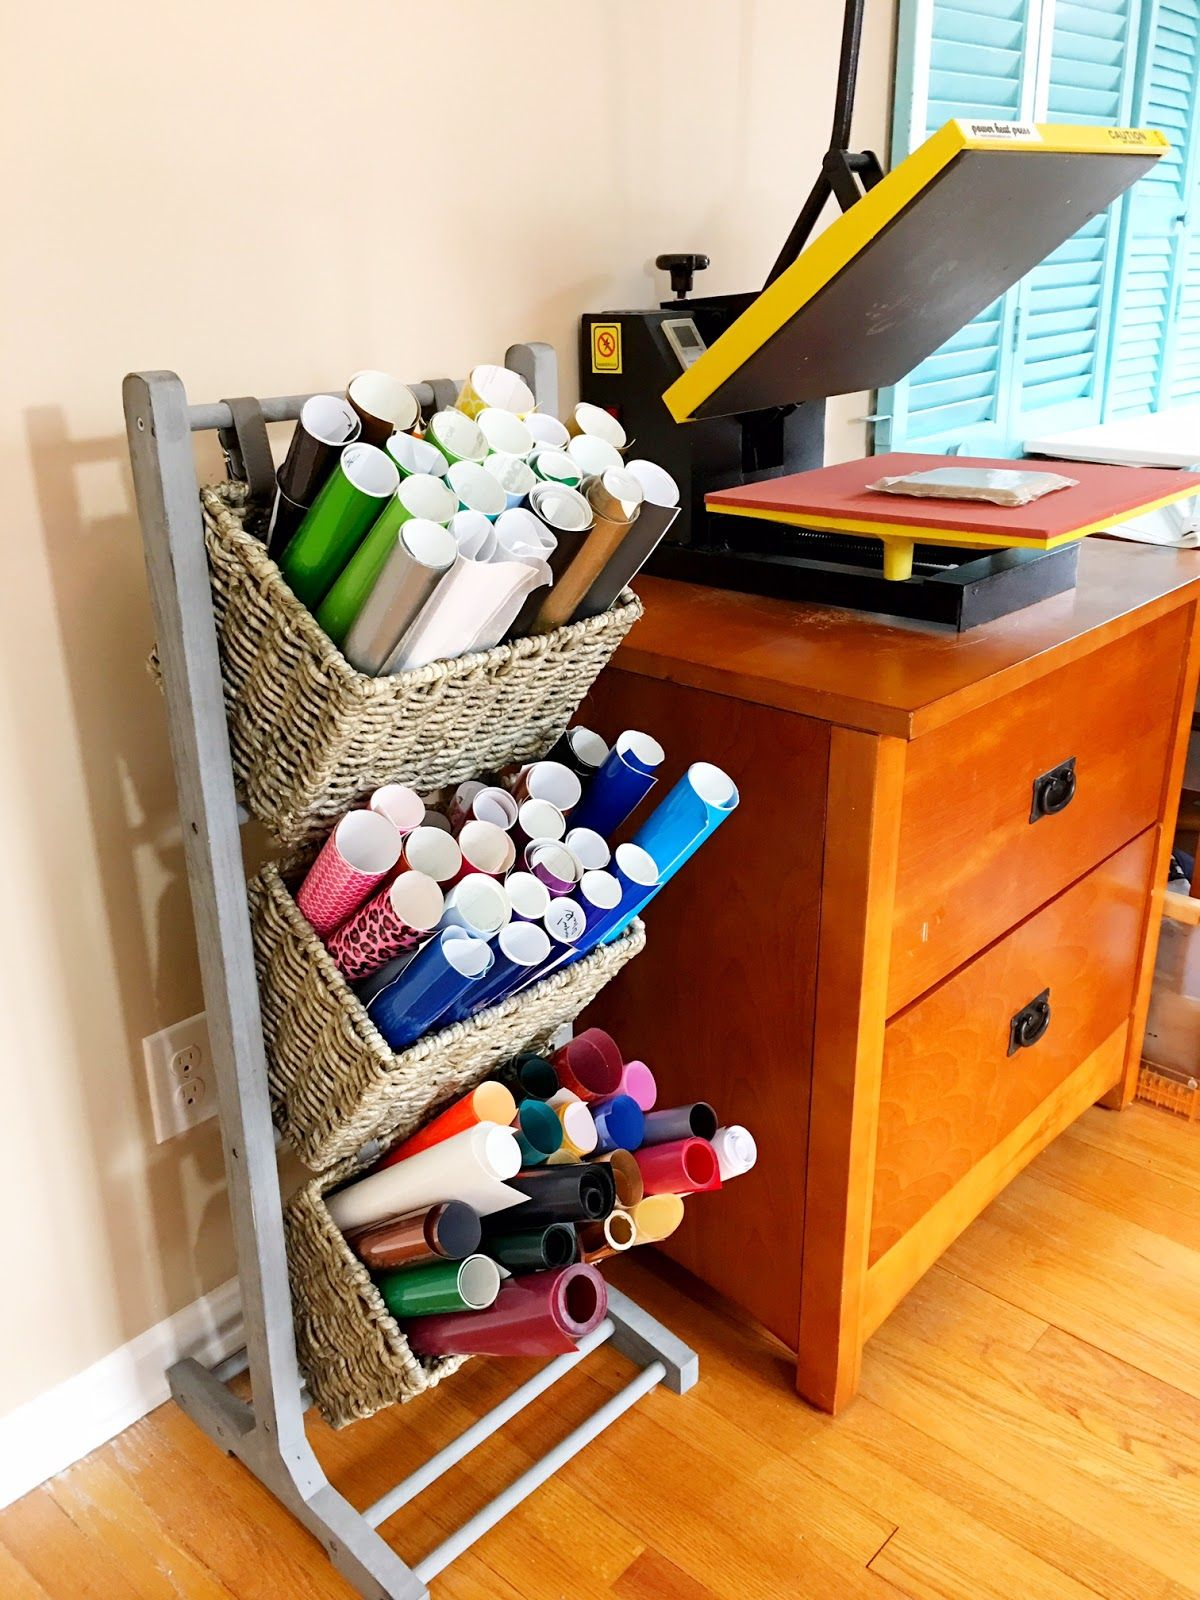 Small Space Vinyl Storage Organization Ideas! Can You Believe 65 Rolls Of  Vinyl Fit In Such A Small Space!